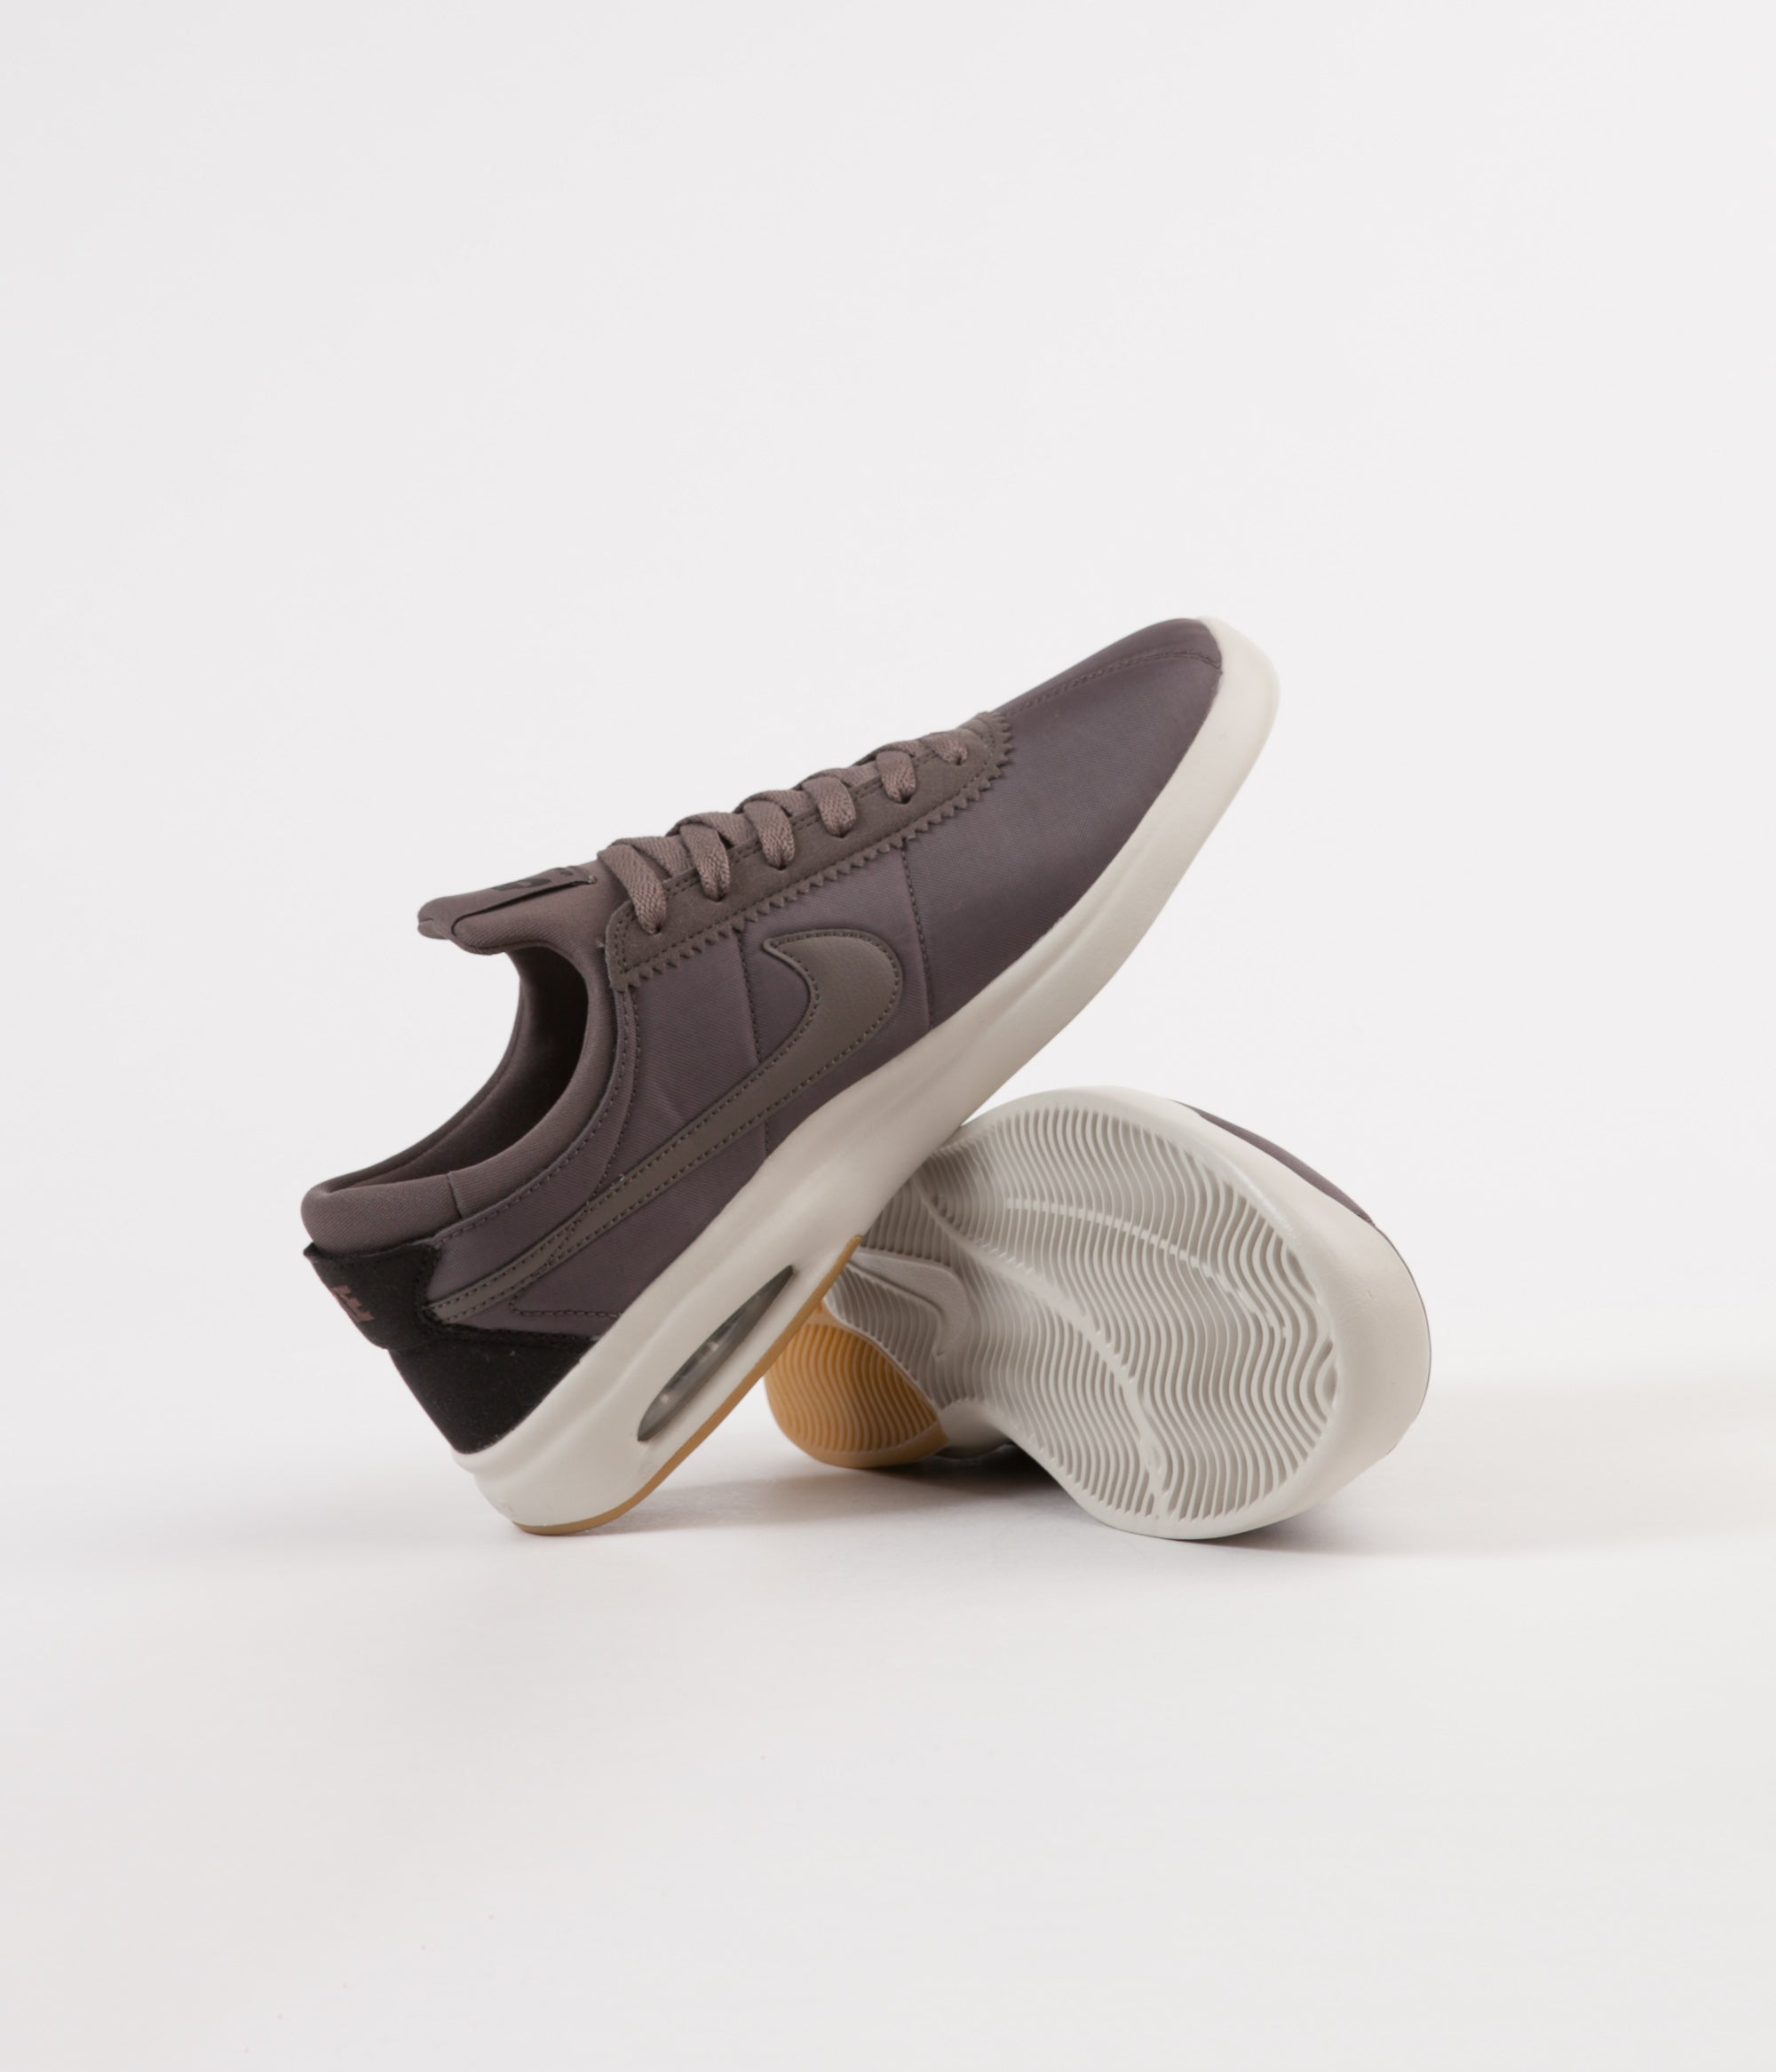 Nike SB Air Max Bruin Vapor Textile Shoes - Ridgerock / Ridgerock - Light Bone